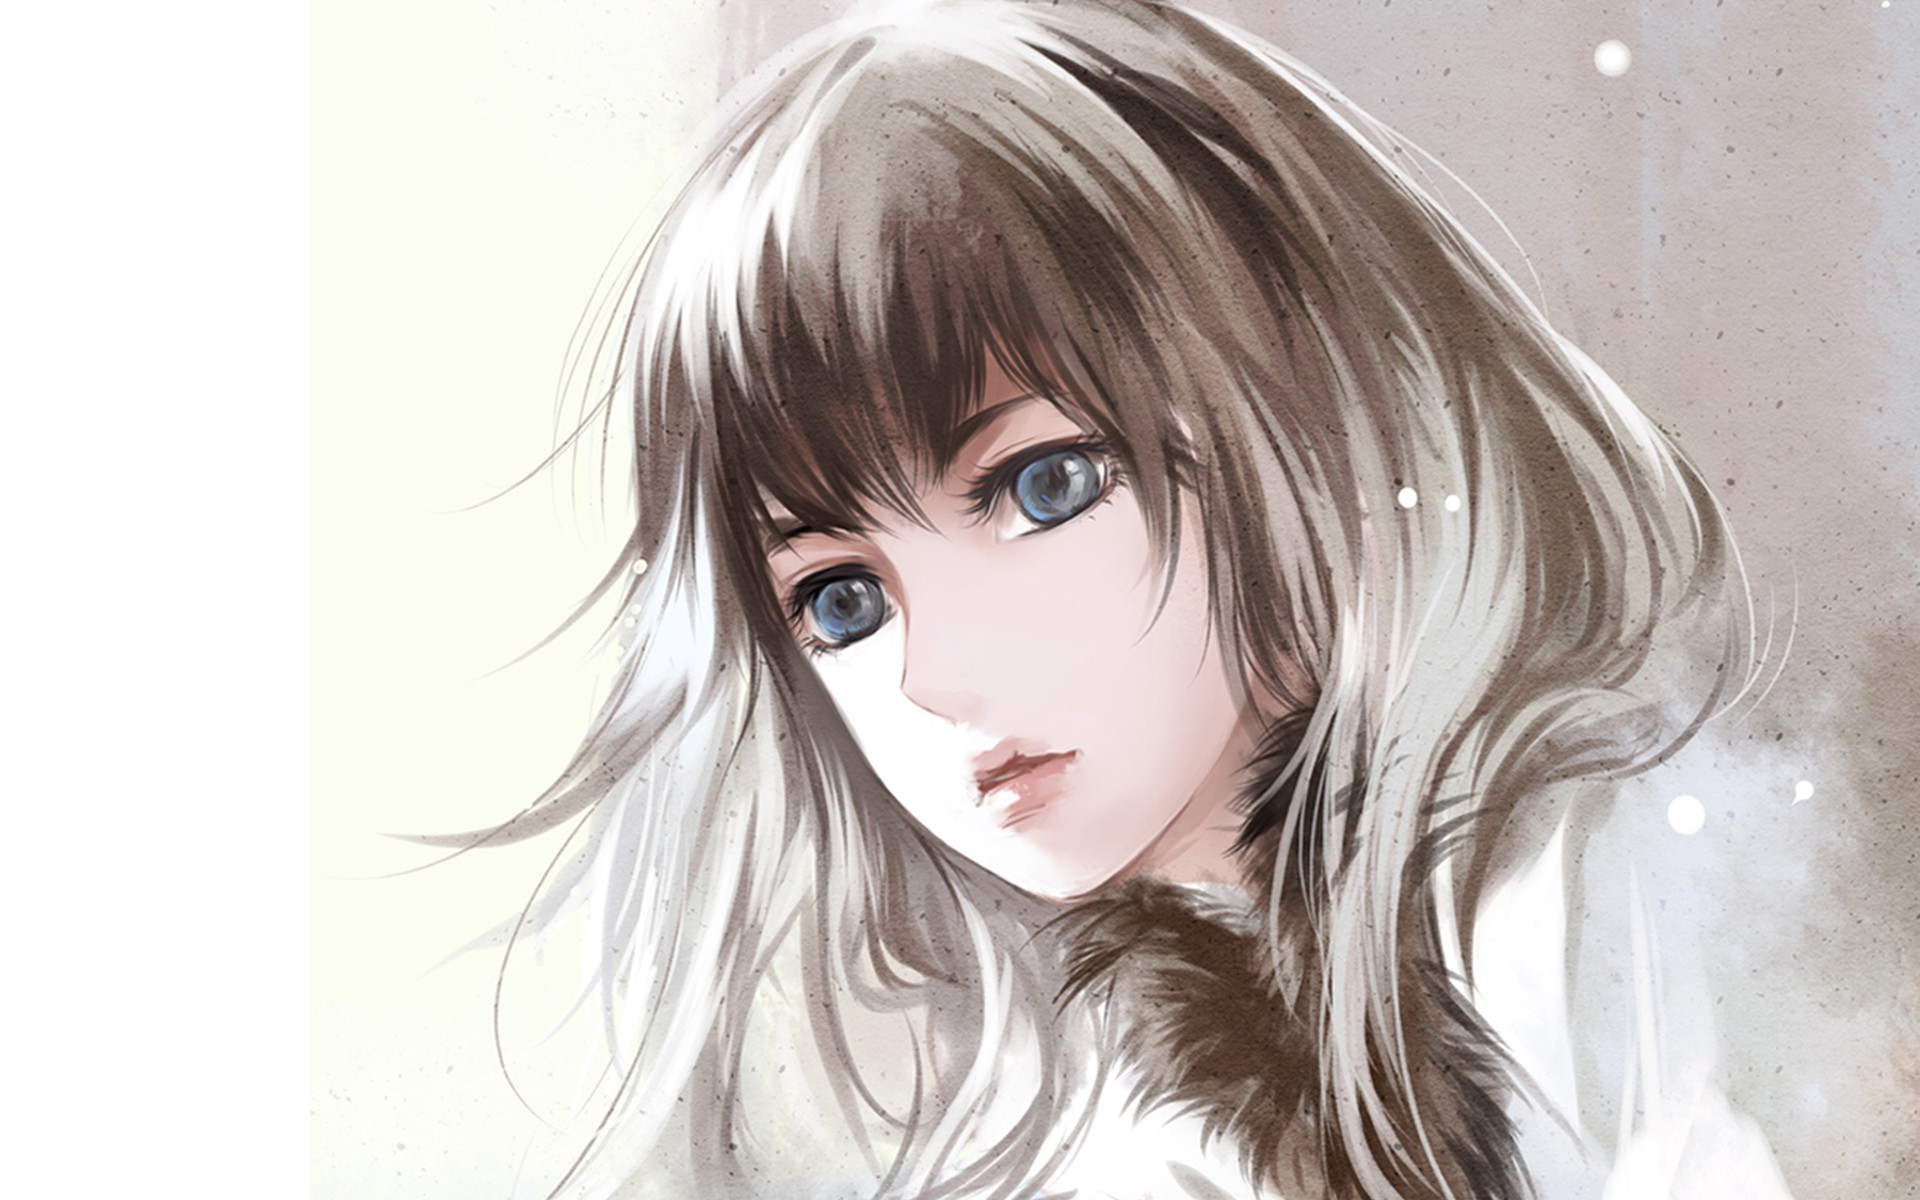 Drawing face anime original girl wallpaper 1920x1200 - Anime face wallpaper ...